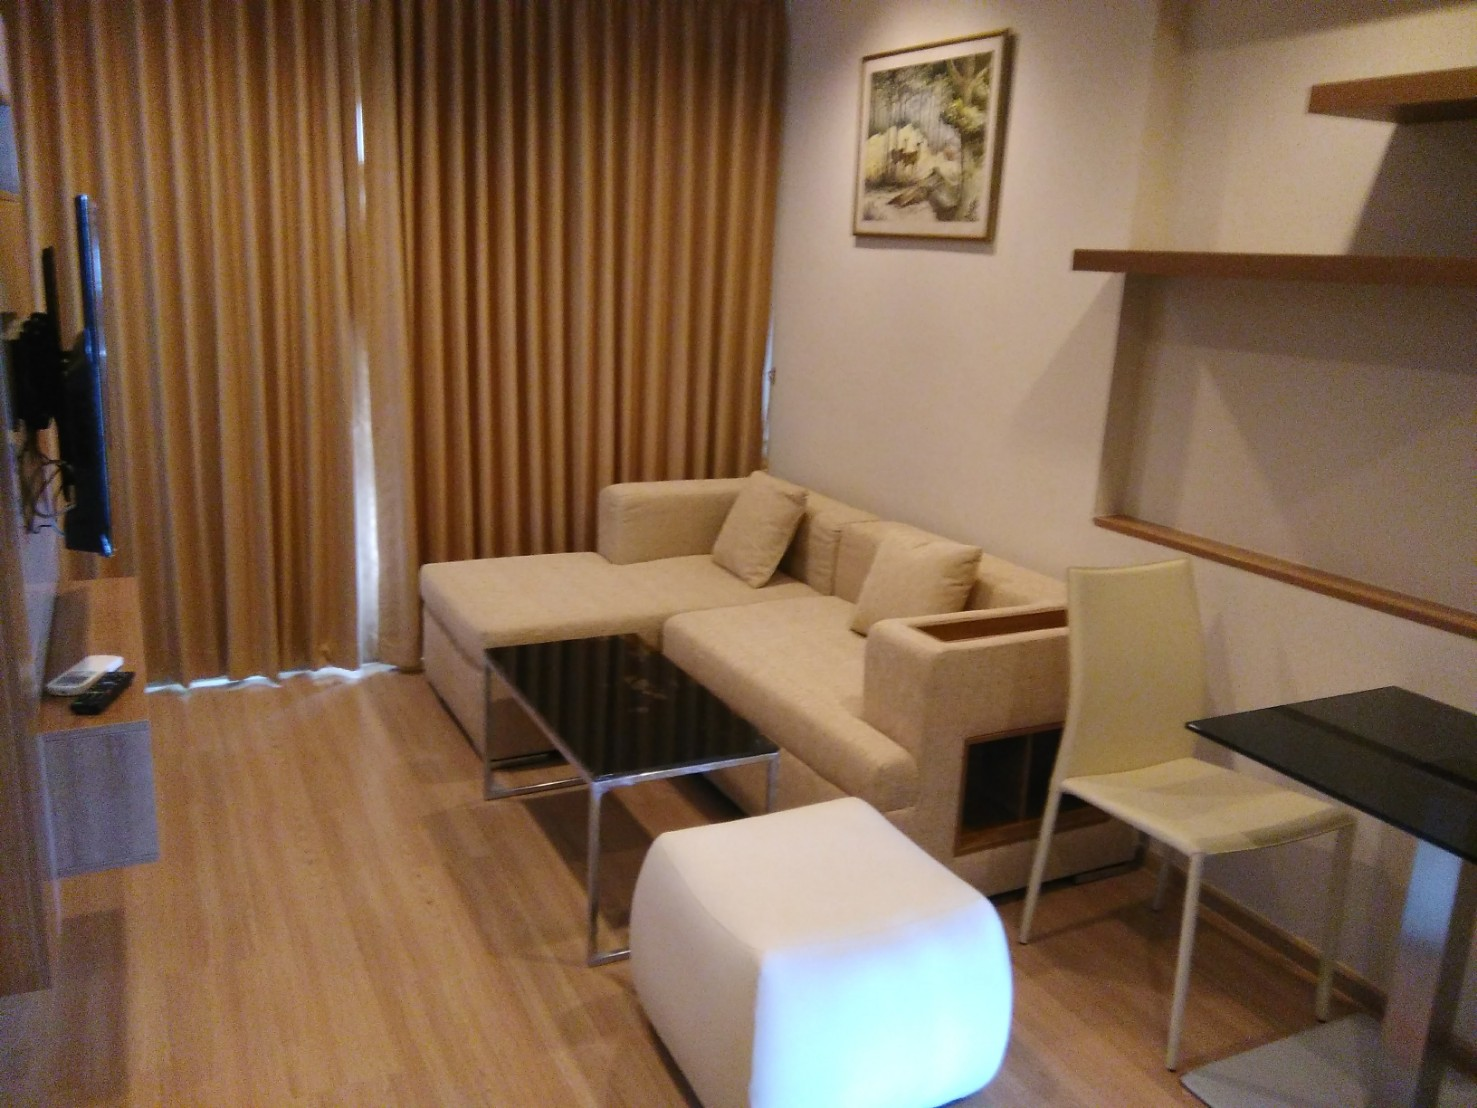 Rhythm Sathorn - Beautifully Furnished 1 Bedroom / High Floor With Open Views / Ready To Move In